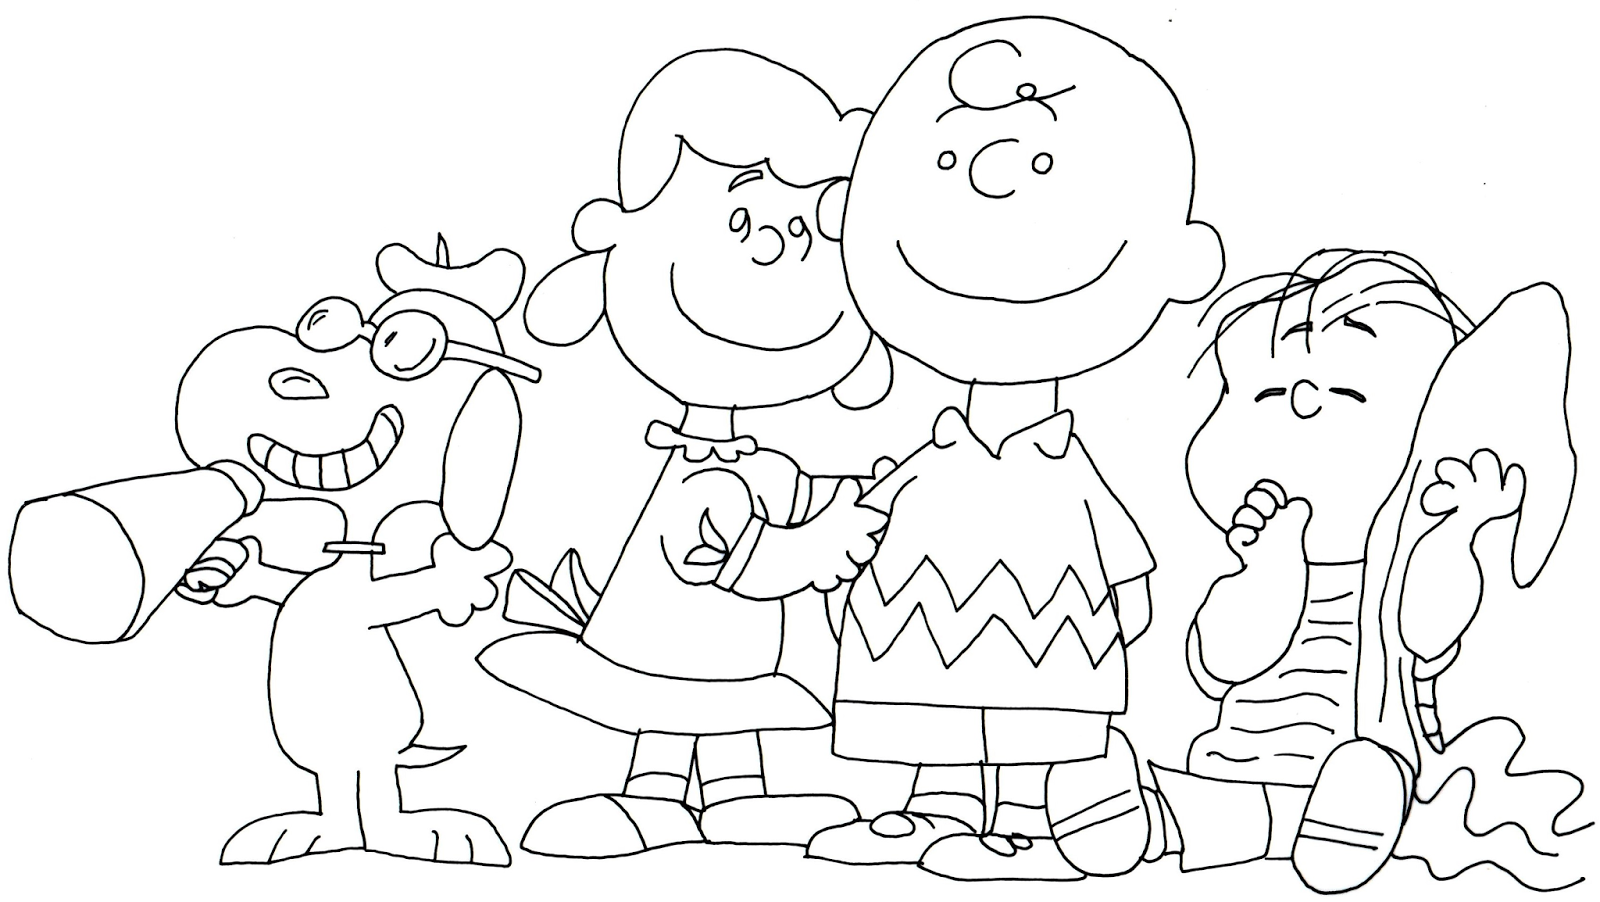 Free printable coloring page for Snoopy, Lucy, Charlie Brown and ...